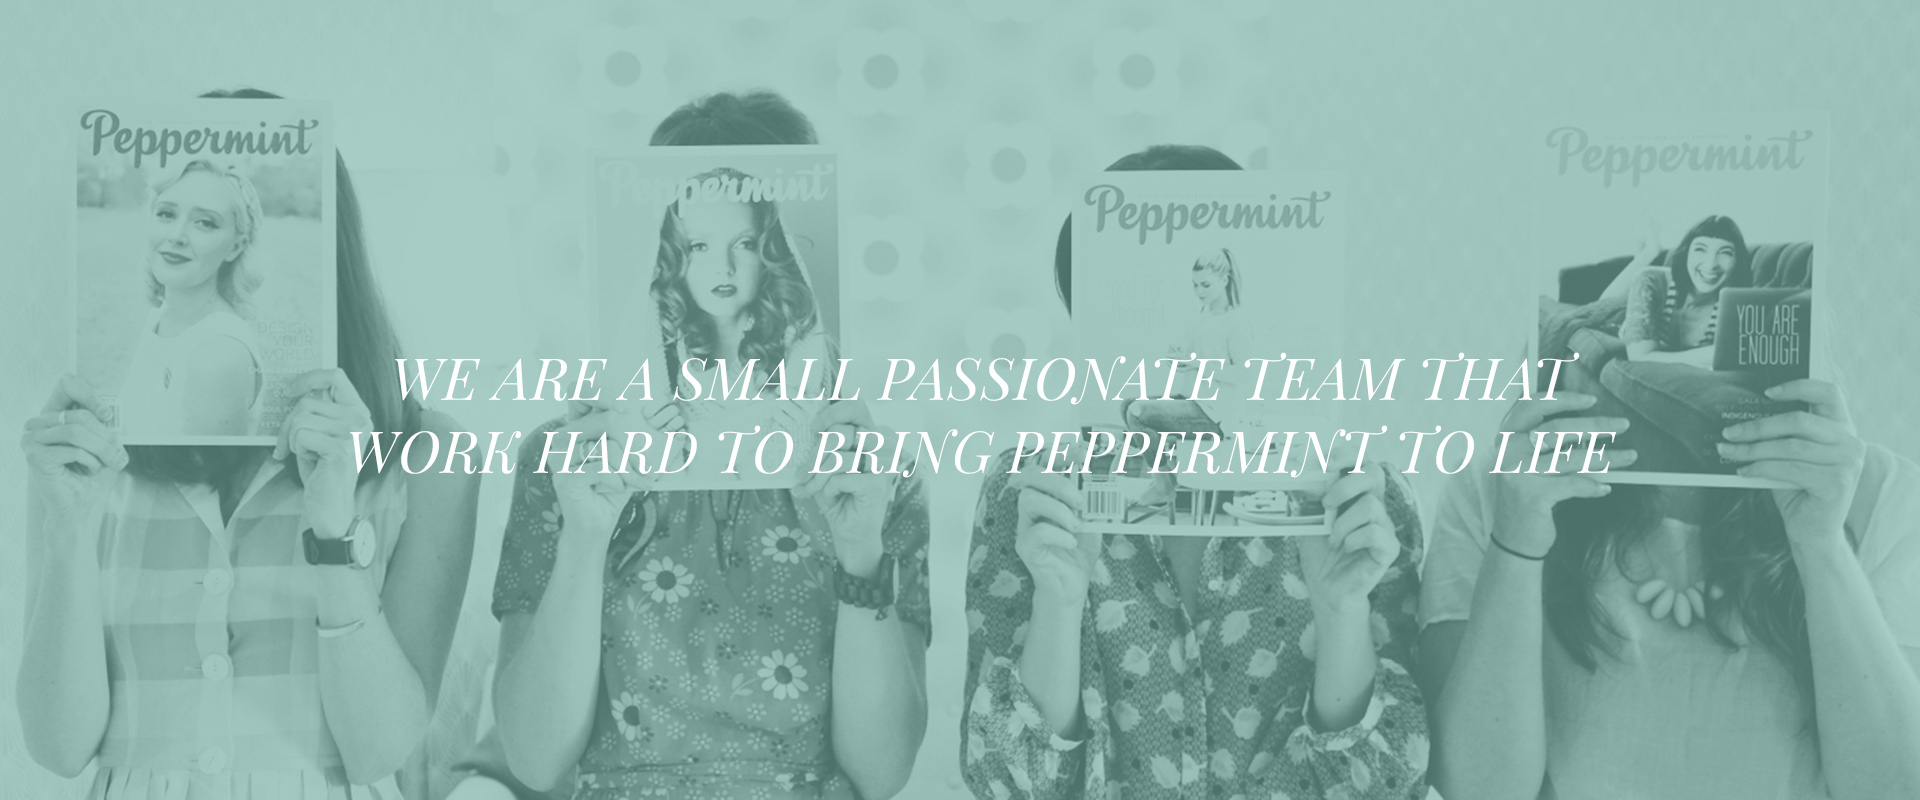 Peppermint magazine team